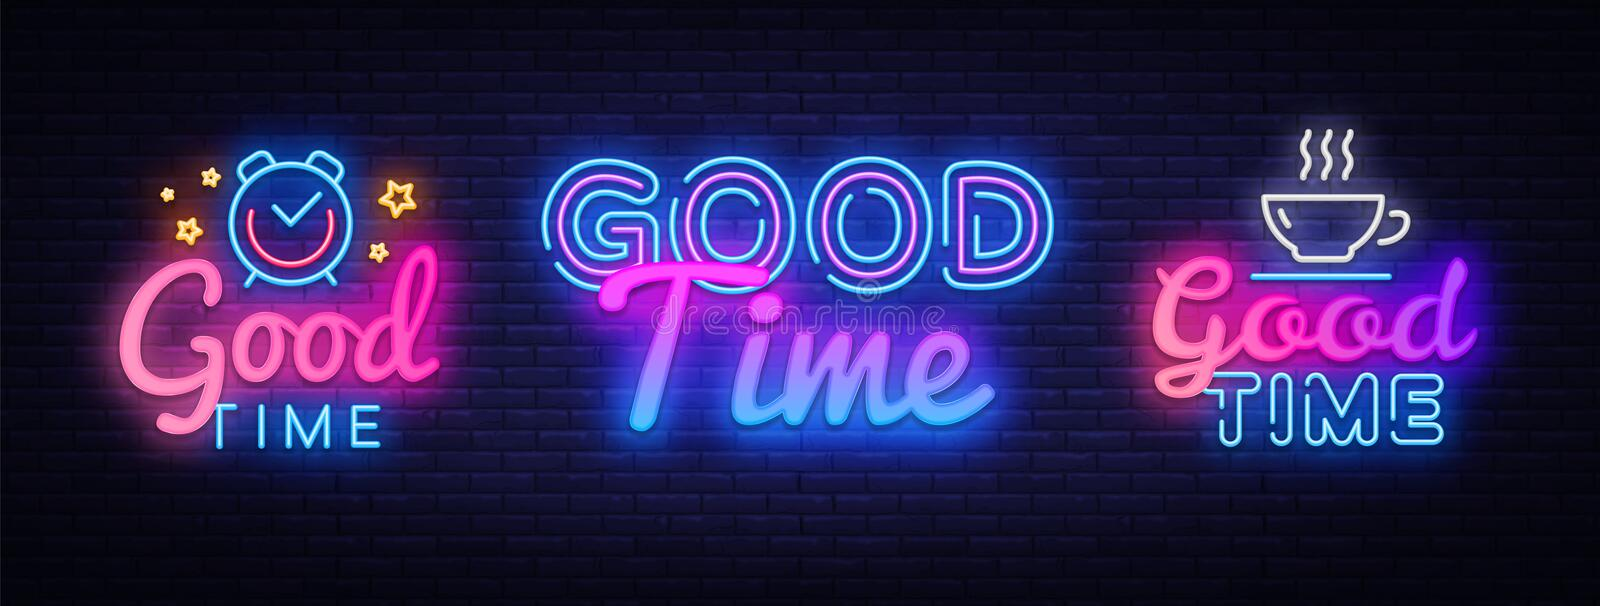 Good Time collection neon signs vector. Good Times design template concept. Neon banner background design, night symbol vector illustration